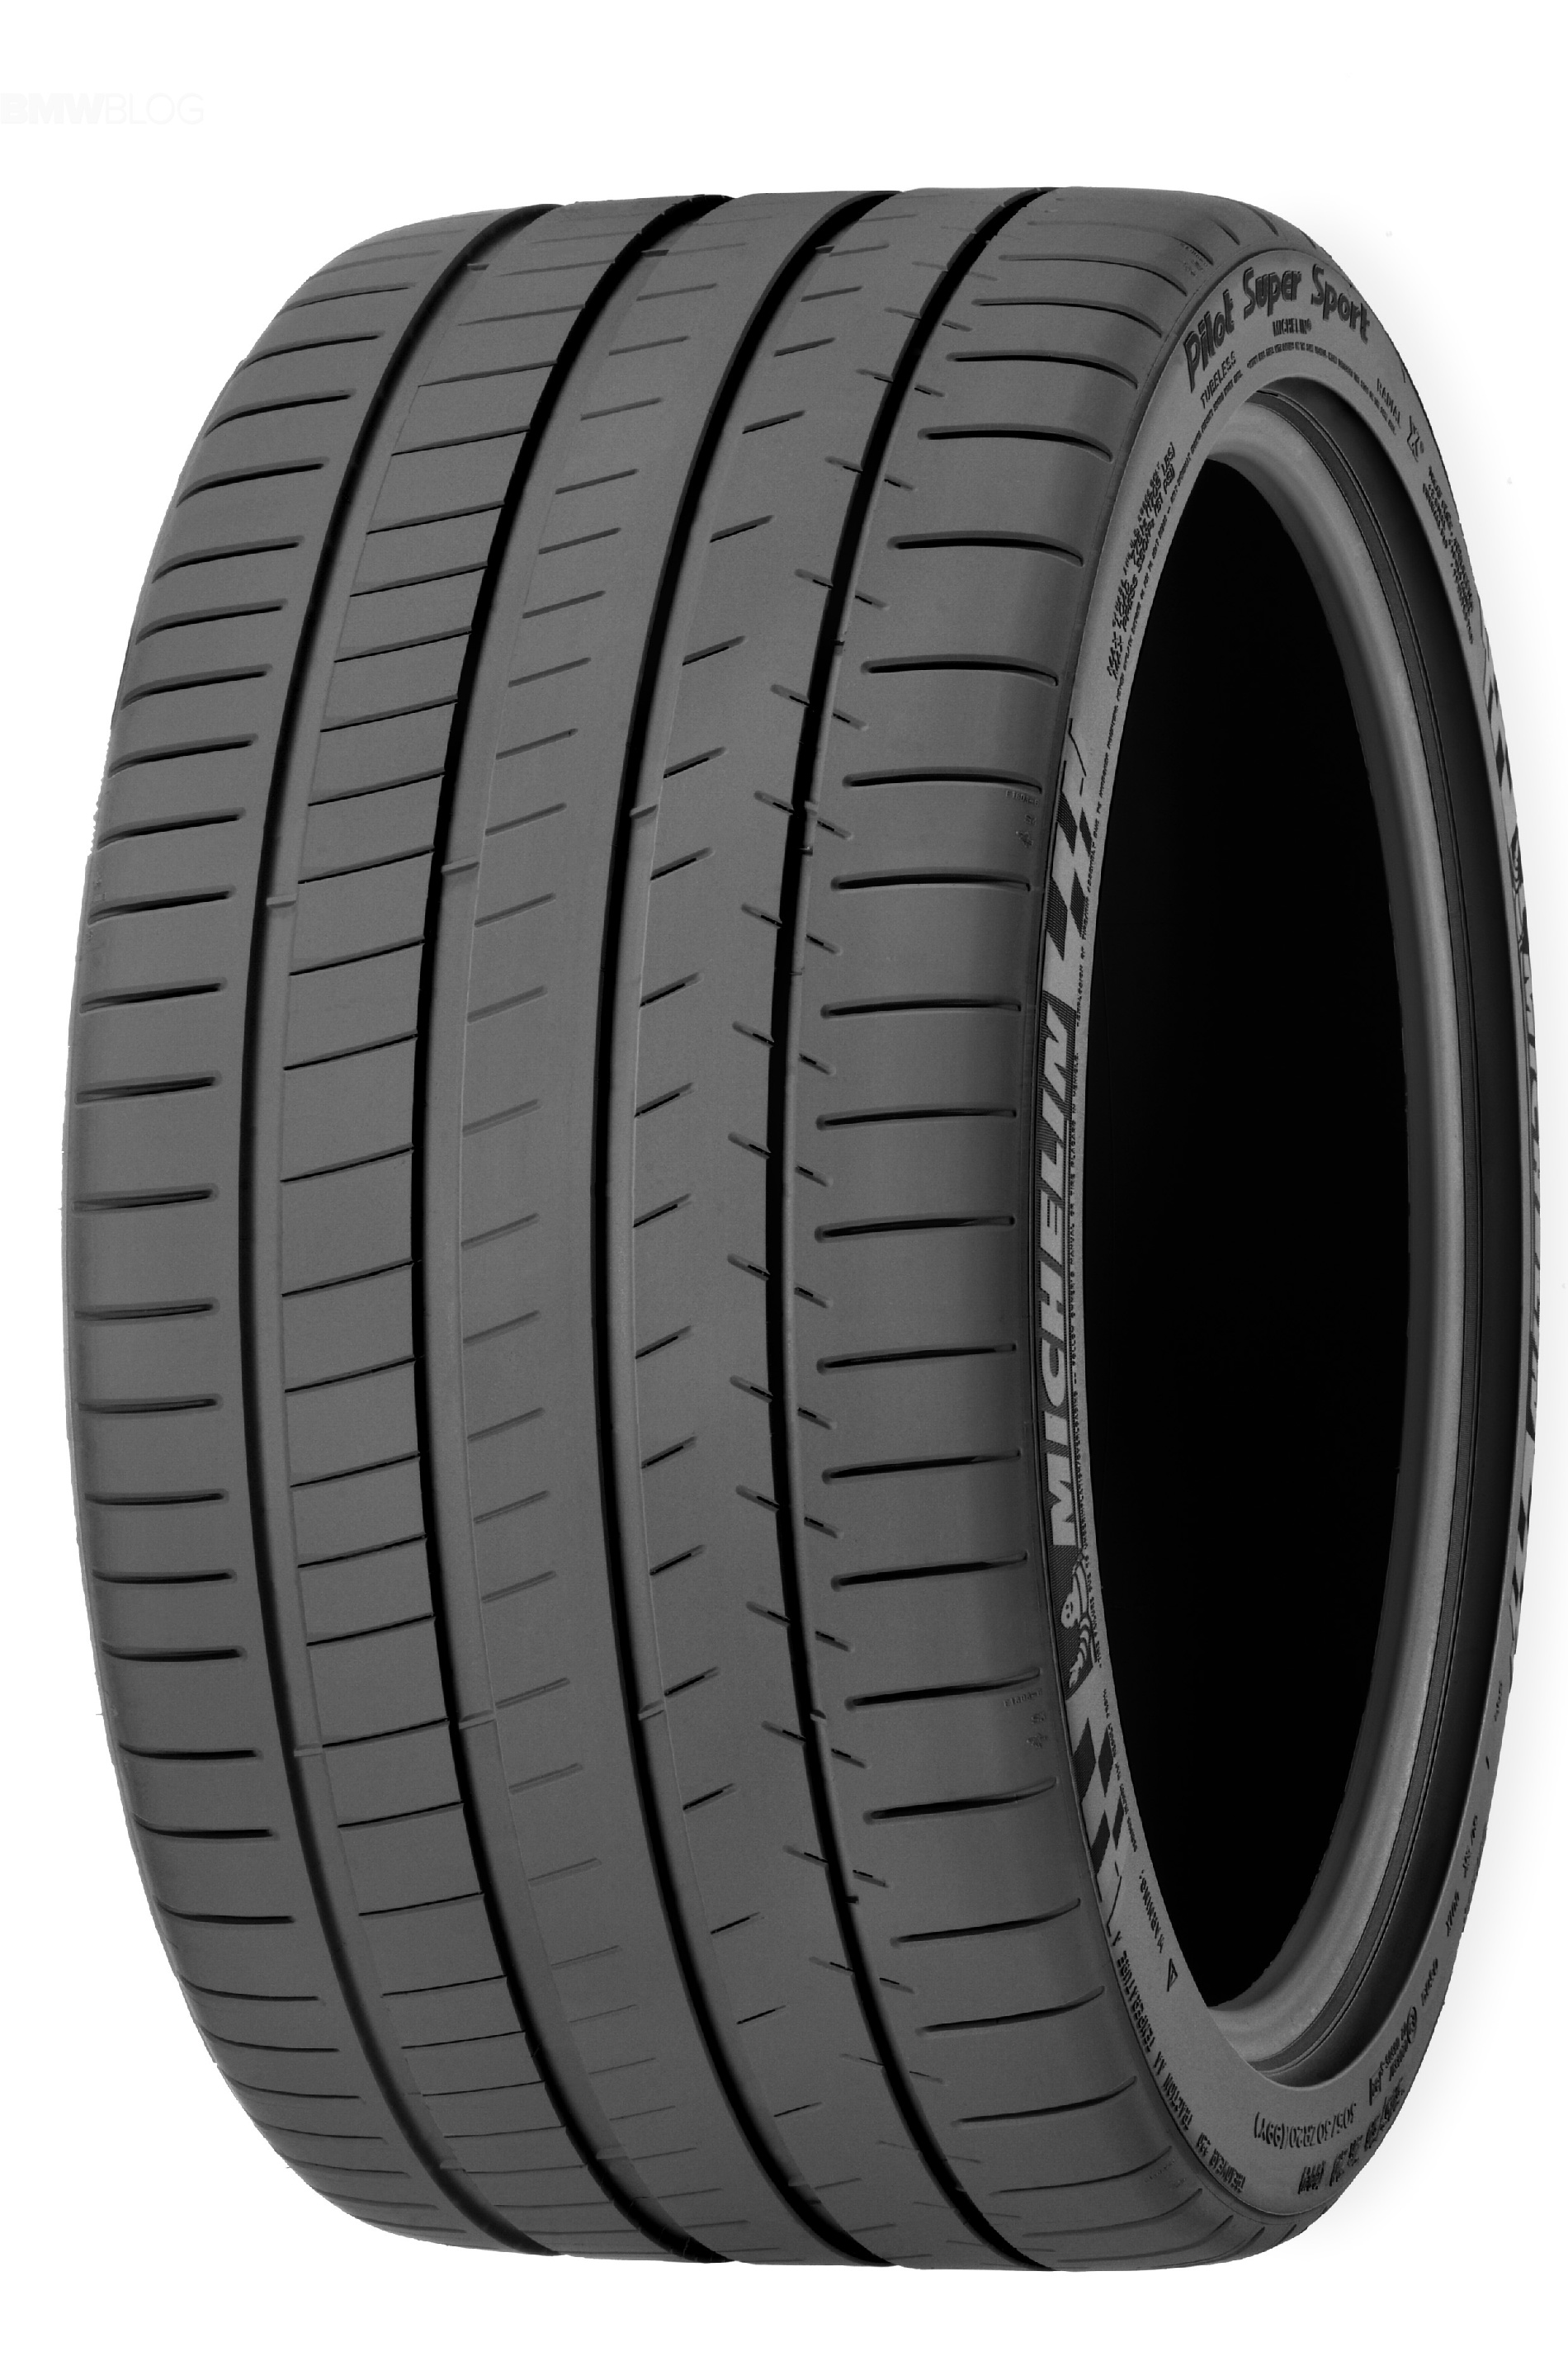 летние шины Michelin Pilot Super Sport 295/35 R19 104/Y